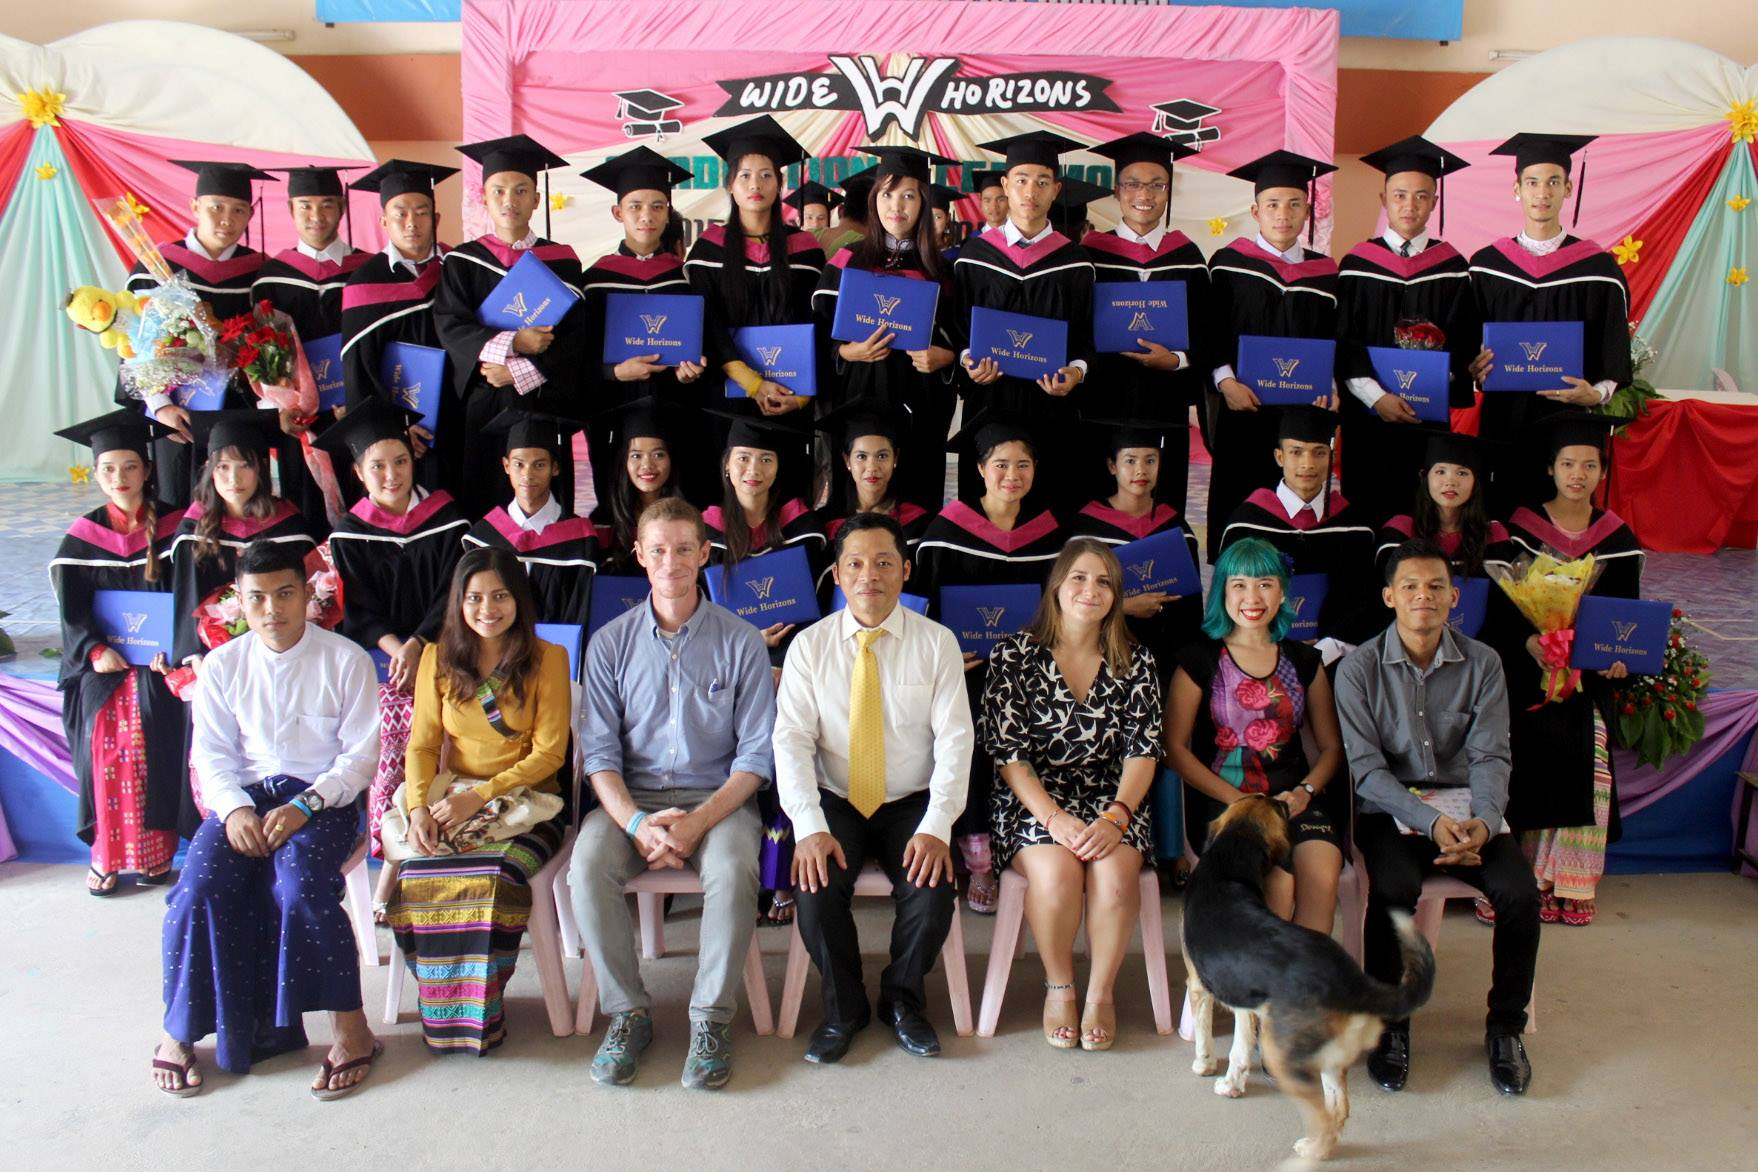 Jordan Pescrillo '12 (seated third from right) with the graduating class at the Wide Horizons Community Development Center. (Photo courtesy of Jordan Pescrillo)